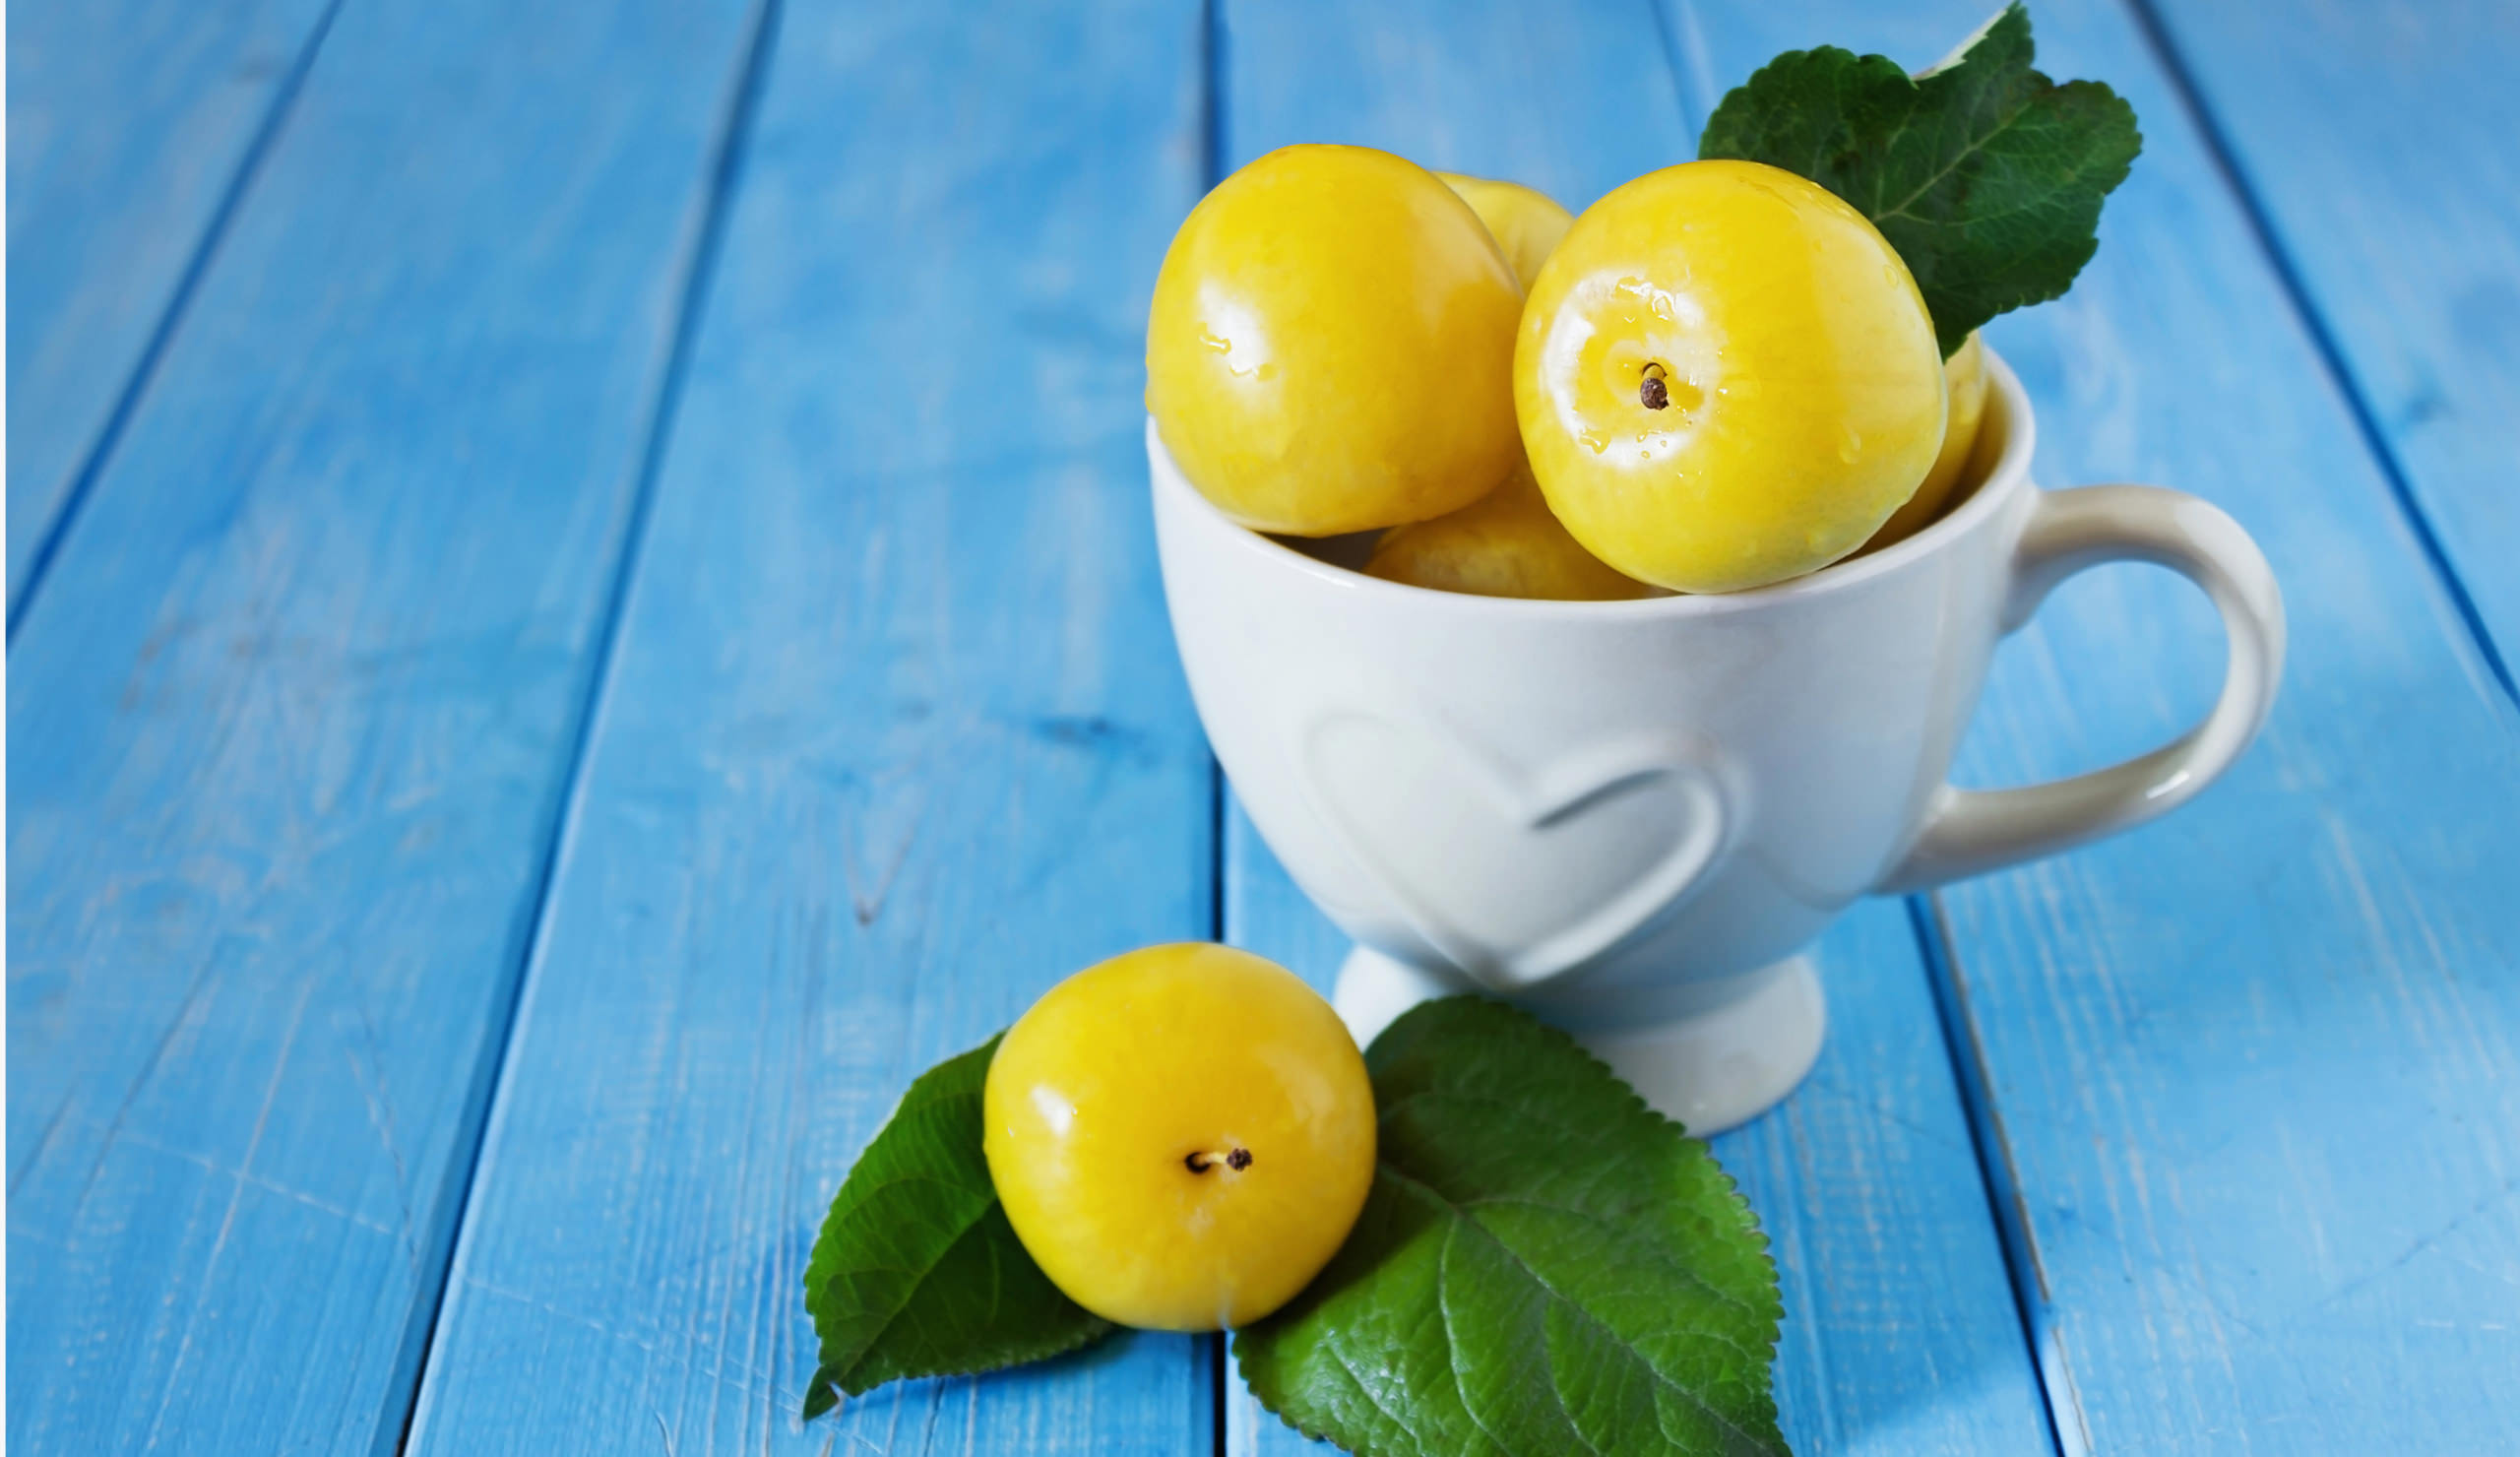 Lemons in a bowl on a wooden blue background